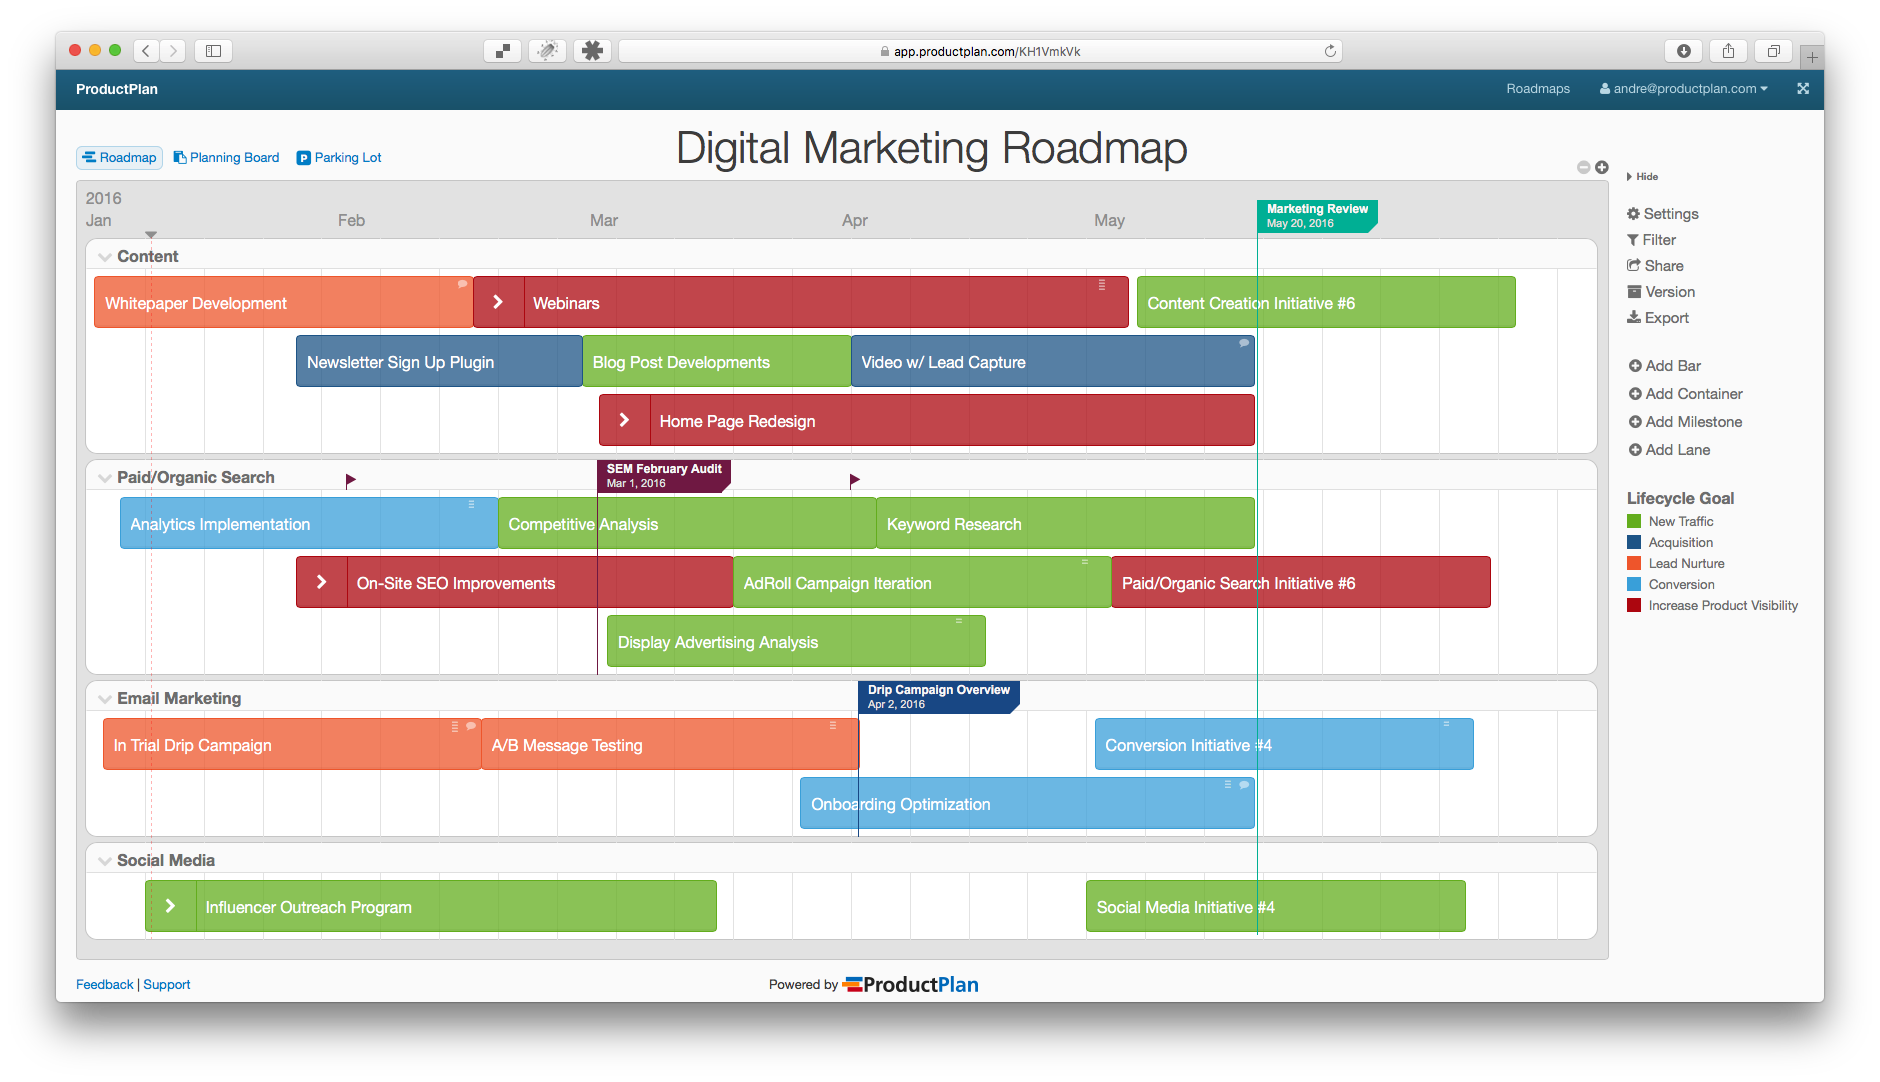 Digital Marketing Roadmap Template Visualizing Data Pinterest - Website roadmap template